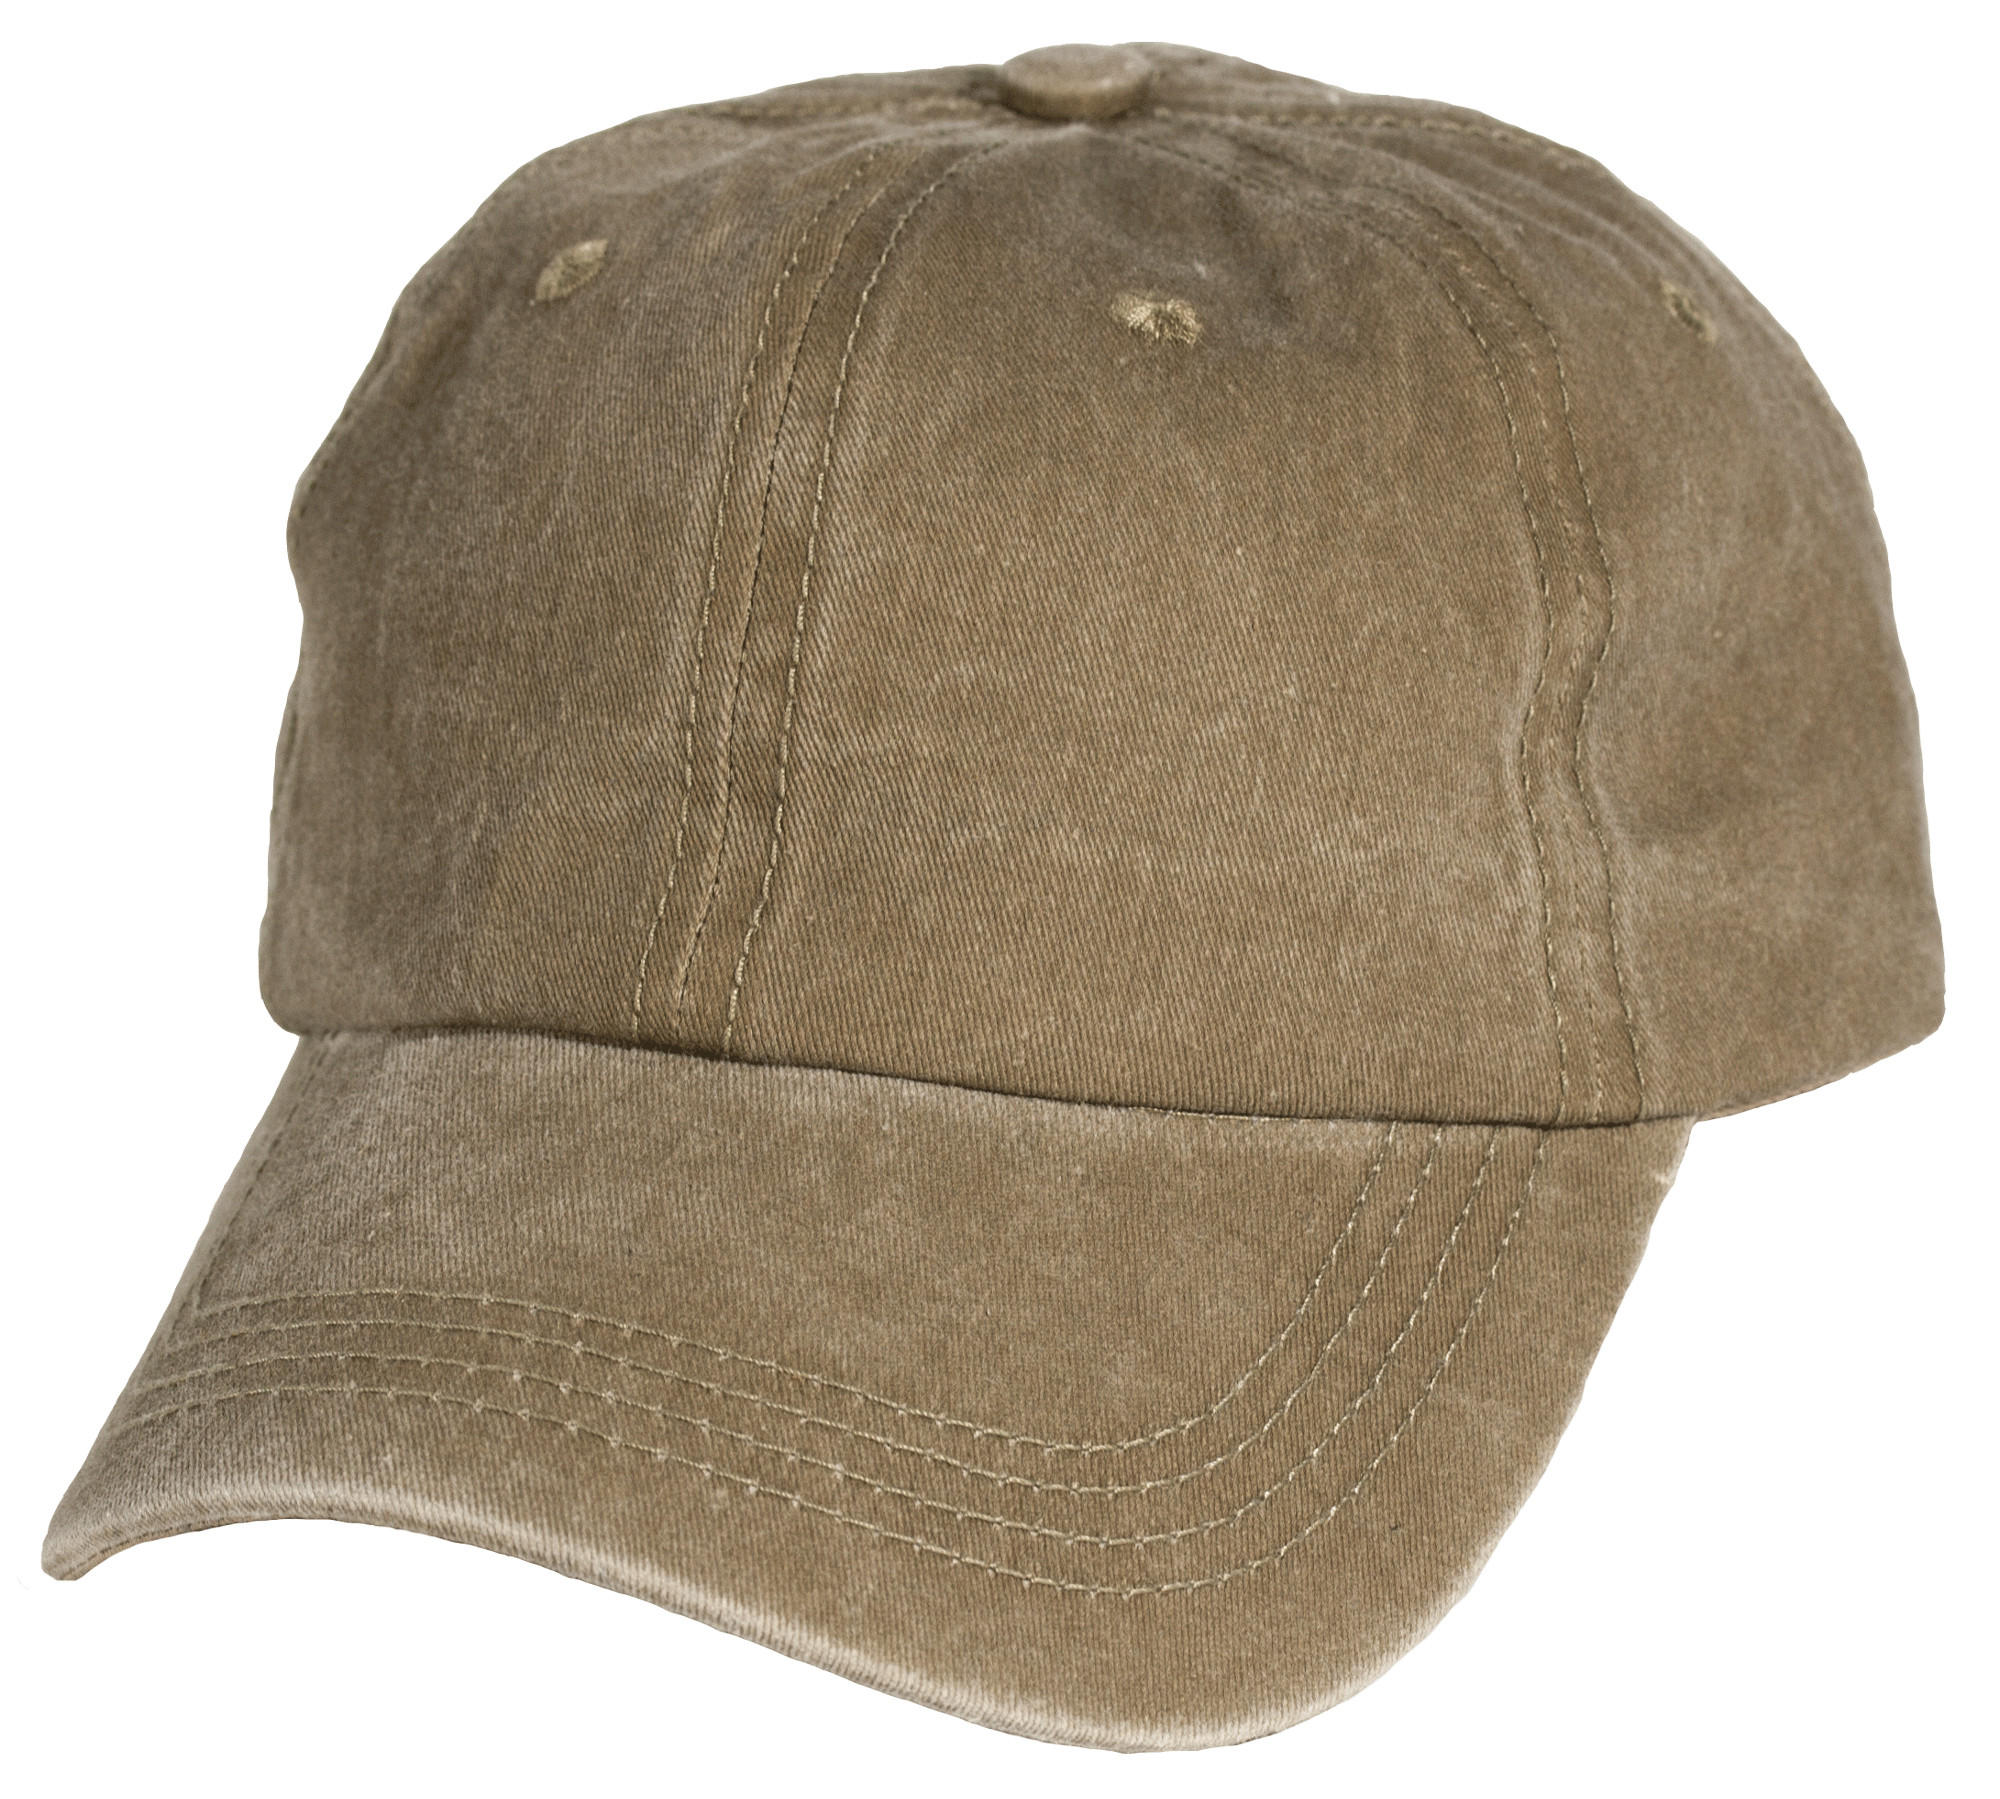 6963cd864fc Washed Cotton Baseball Cap by Levine Hat from Levine Hat Co.